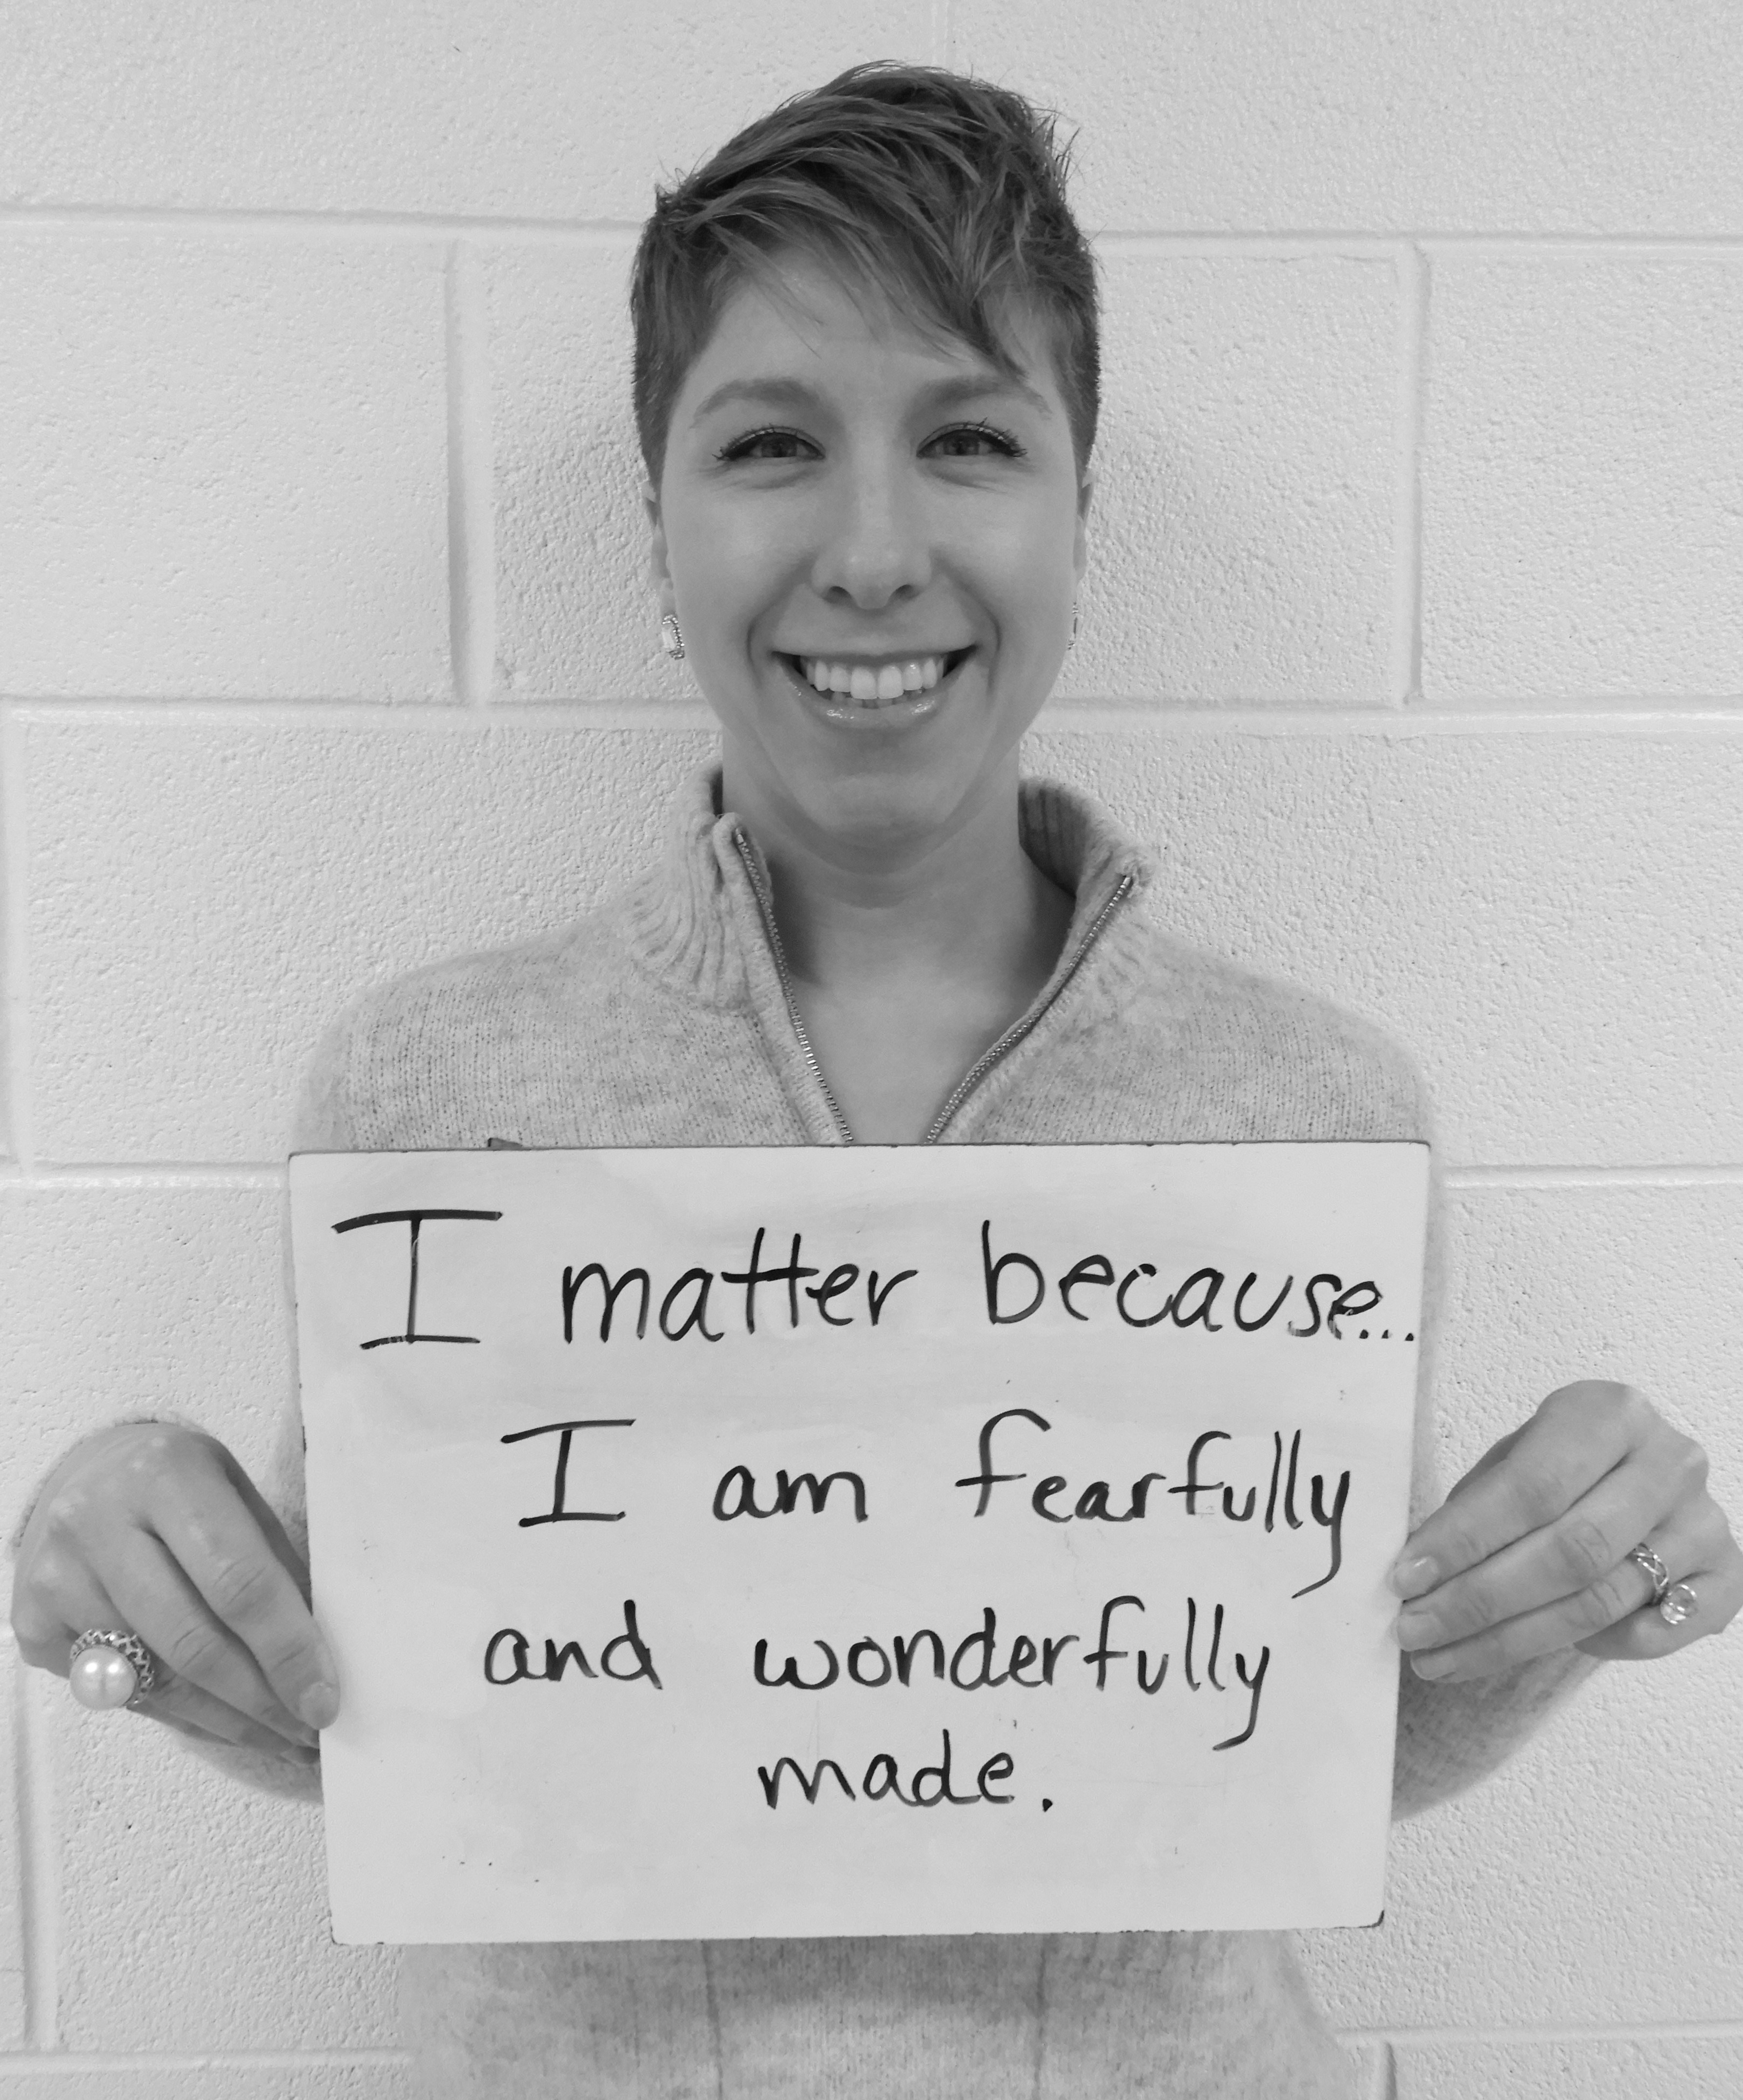 I matter because...I am fearfully and wonderfully made